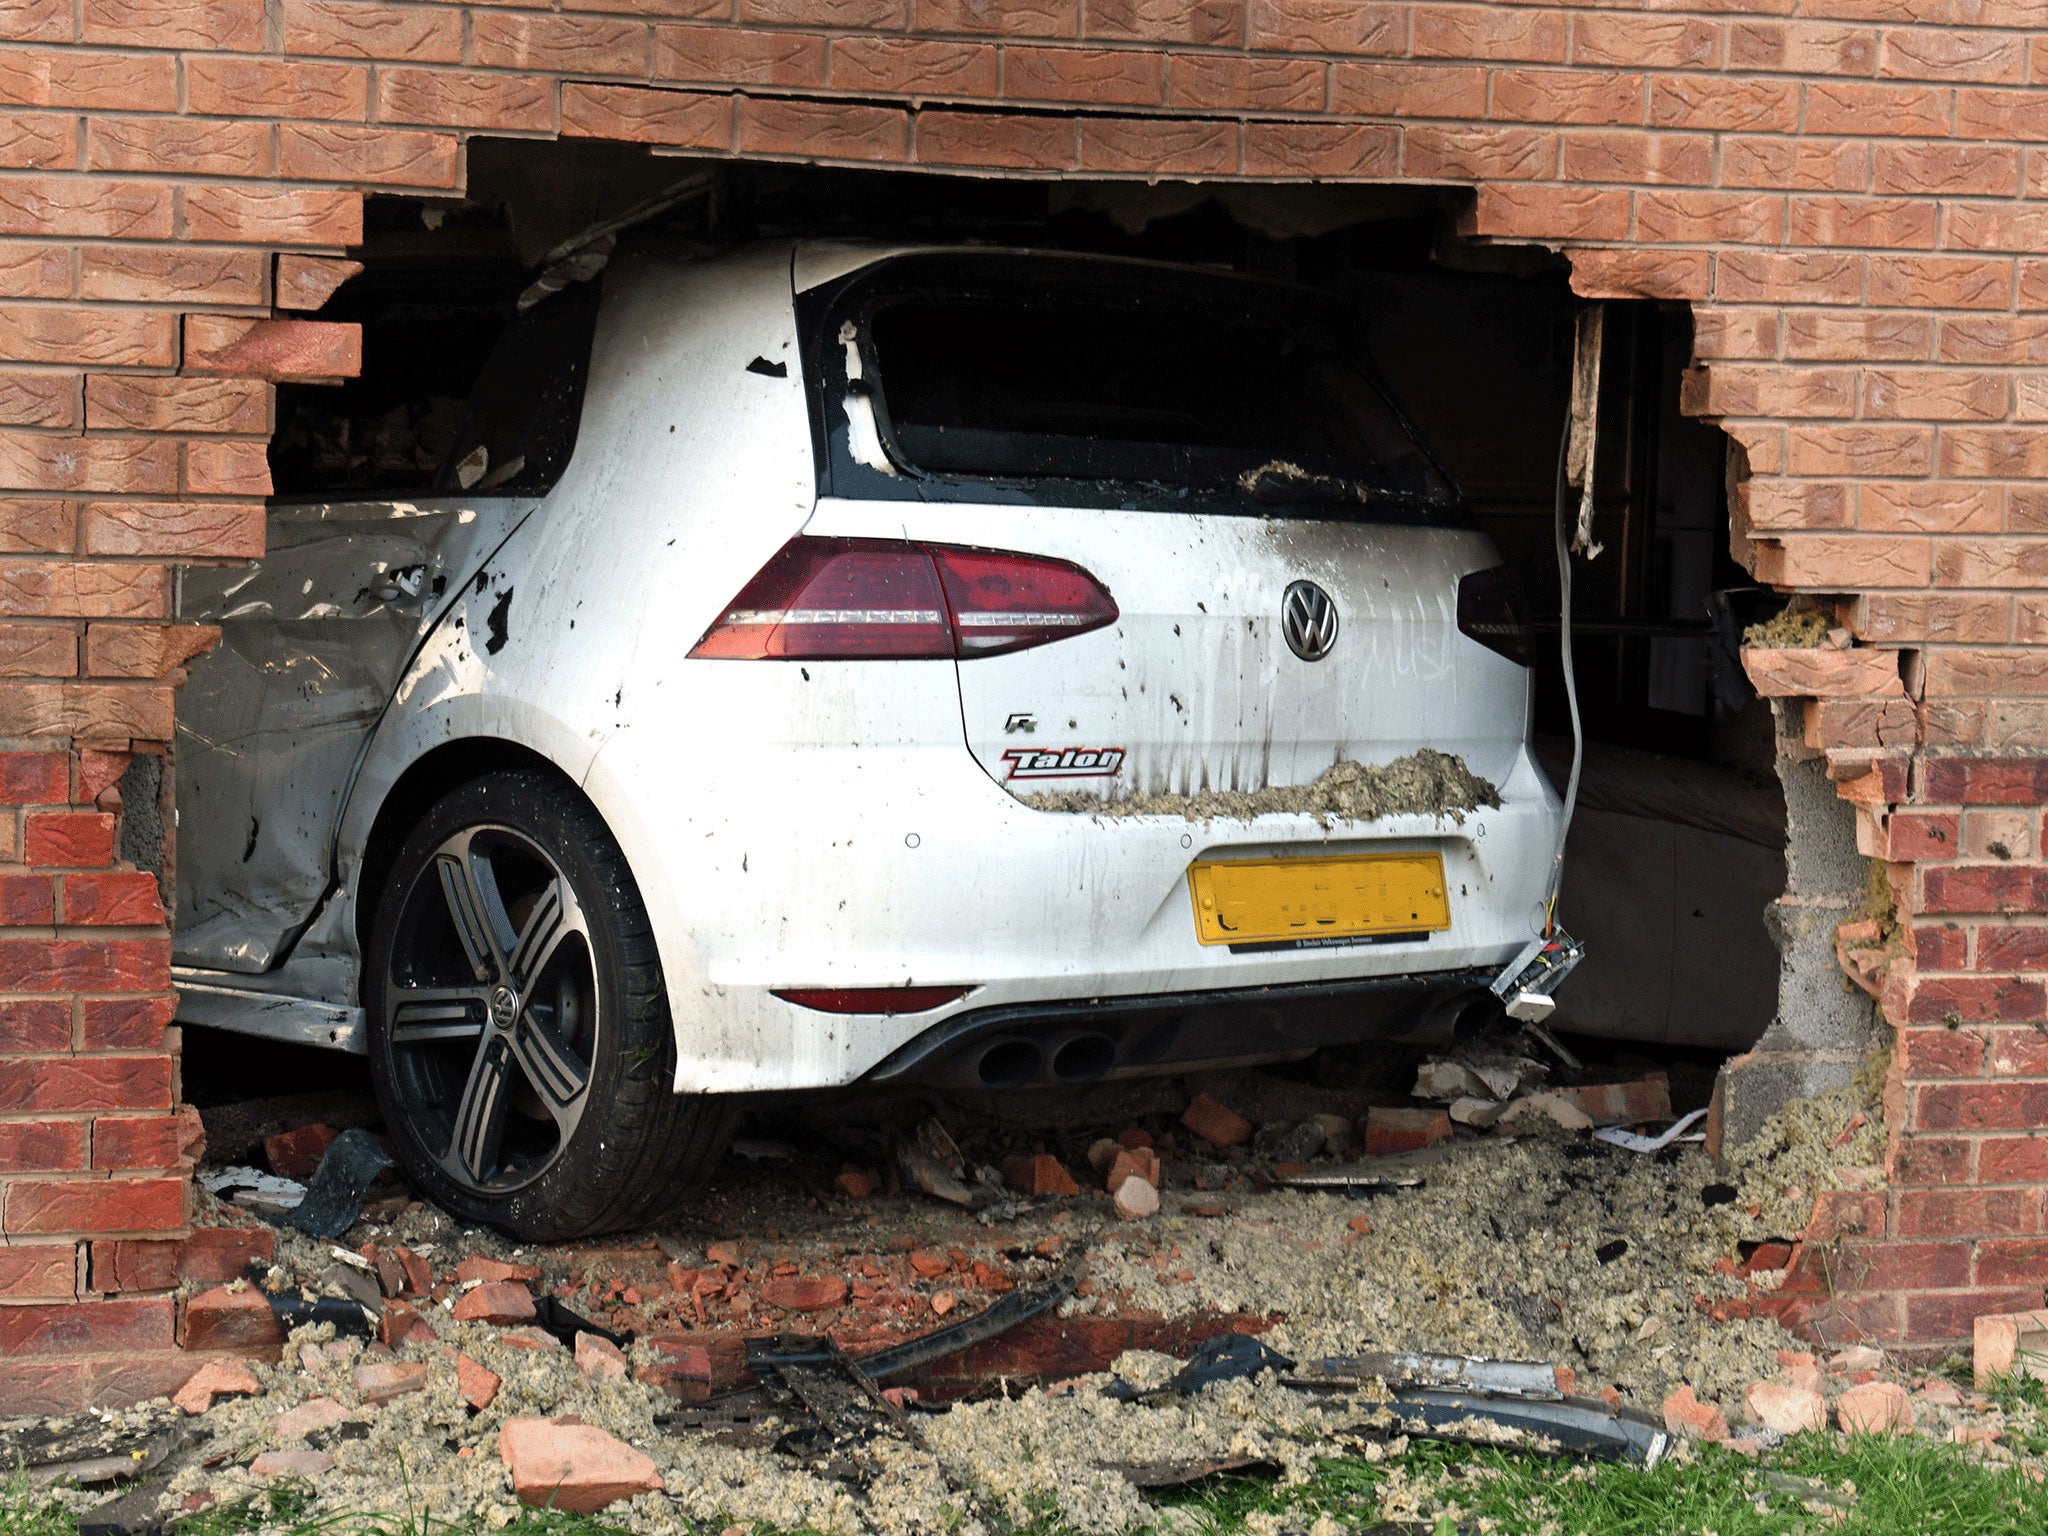 car crash - latest news, breaking stories and comment - the independent